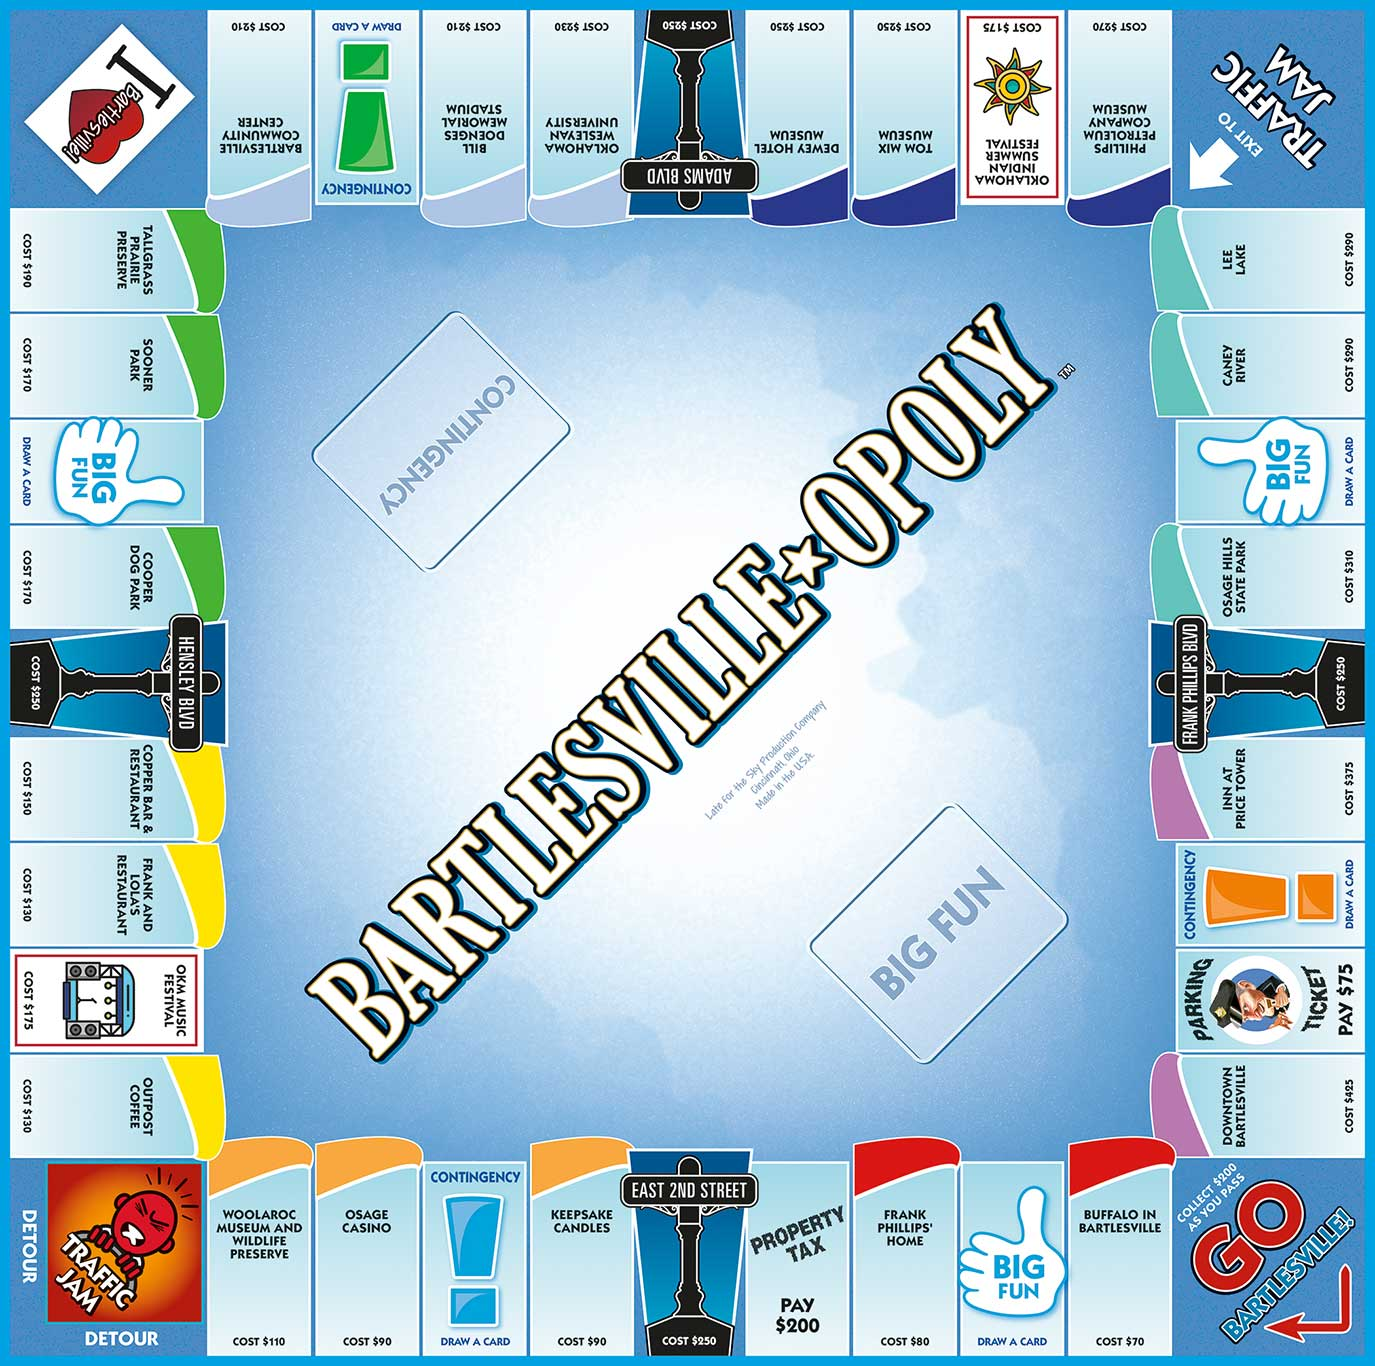 BARTLESVILLE-OPOLY Board Game